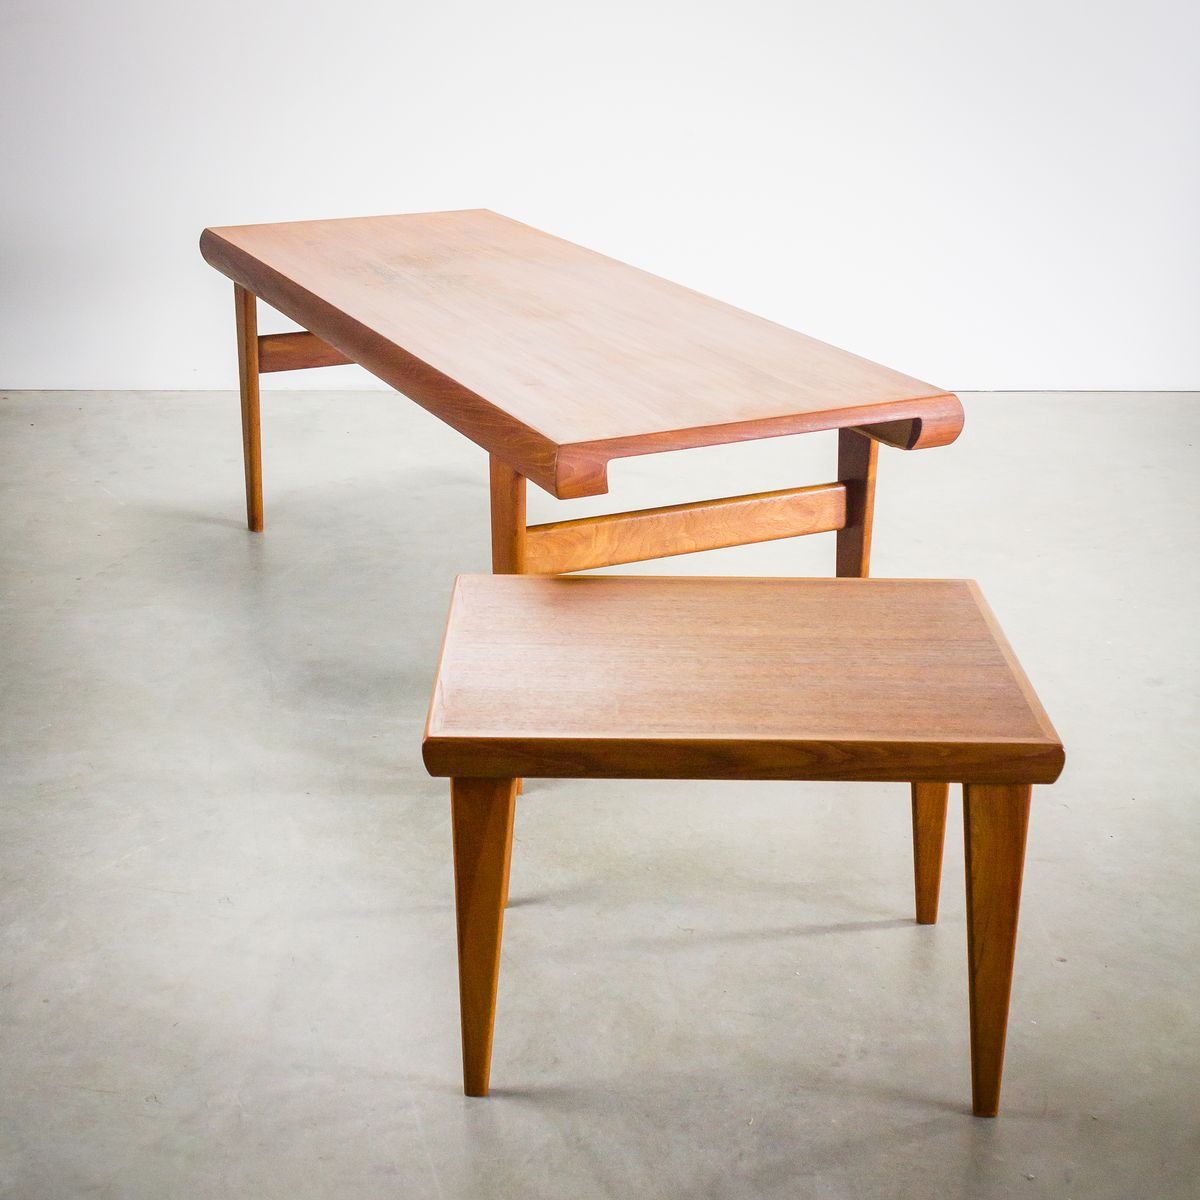 Scandinavian Teak Coffee Table: Danish Teak Coffee Table With Hidden Side Table From Trioh